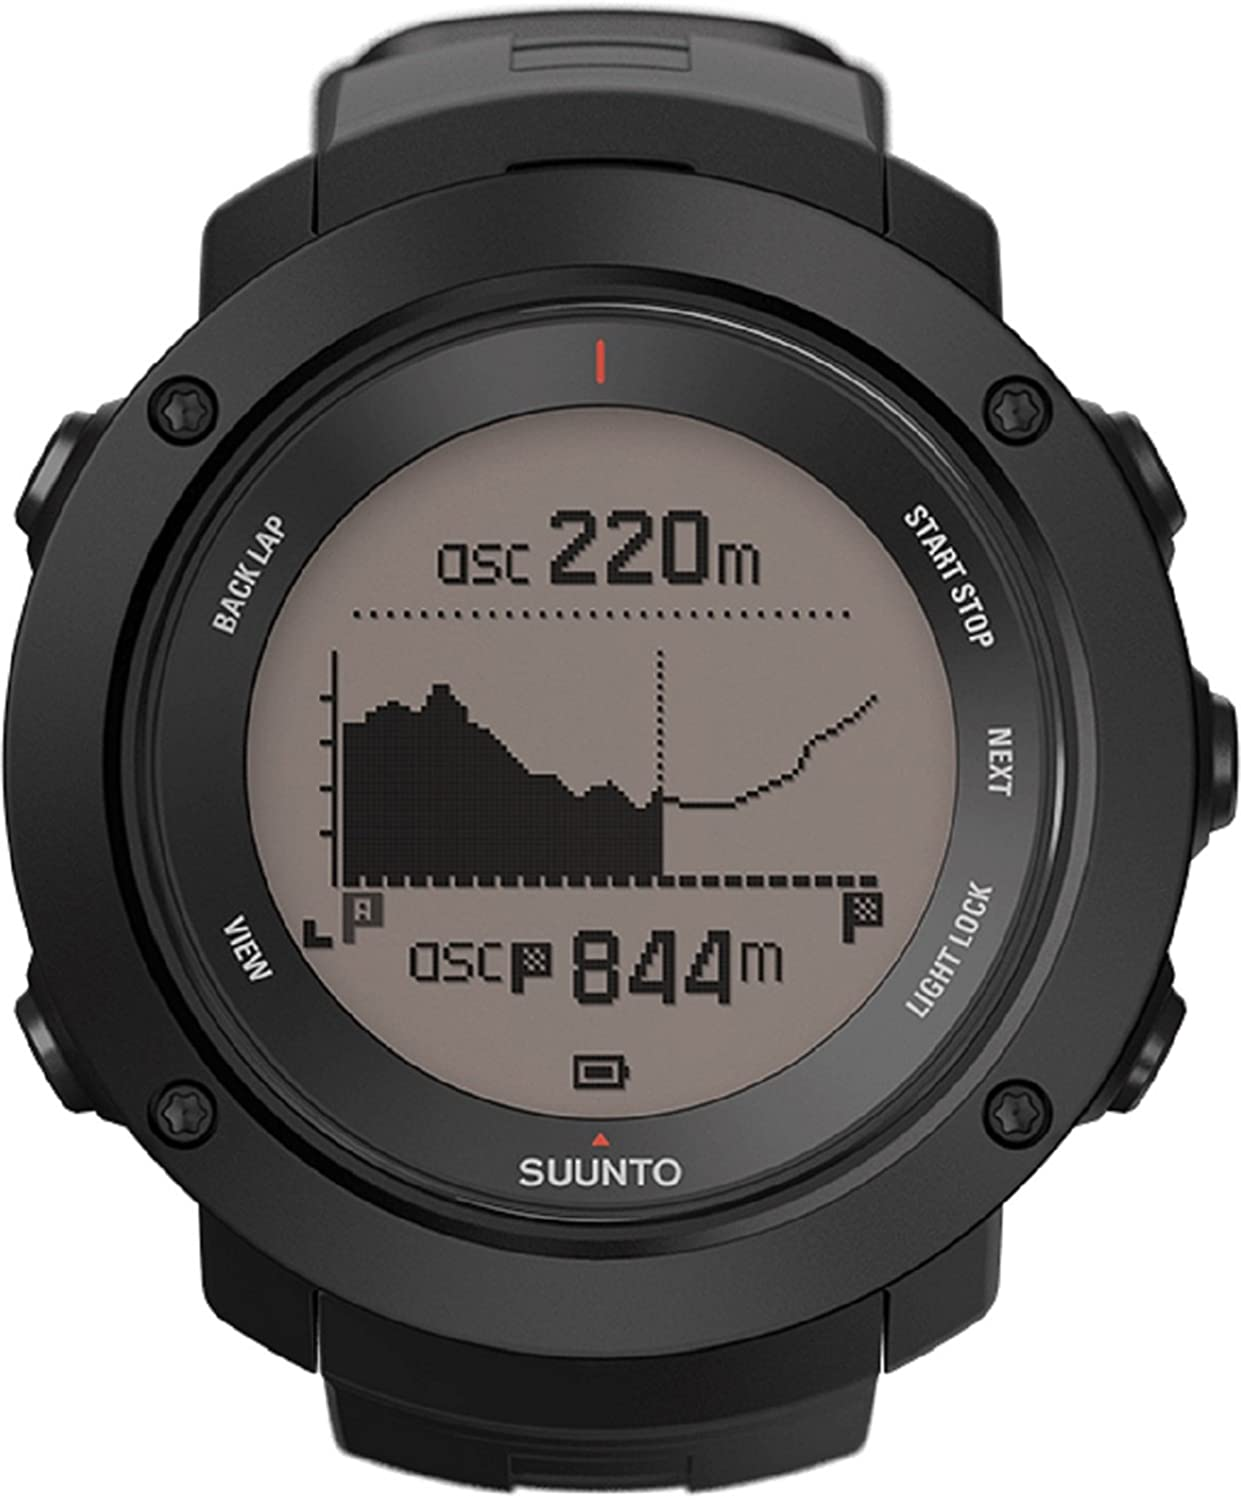 Amazon.com : Suunto Ambit3 Vertical Black Run Watch - AW16 - One - Black : Sports & Outdoors